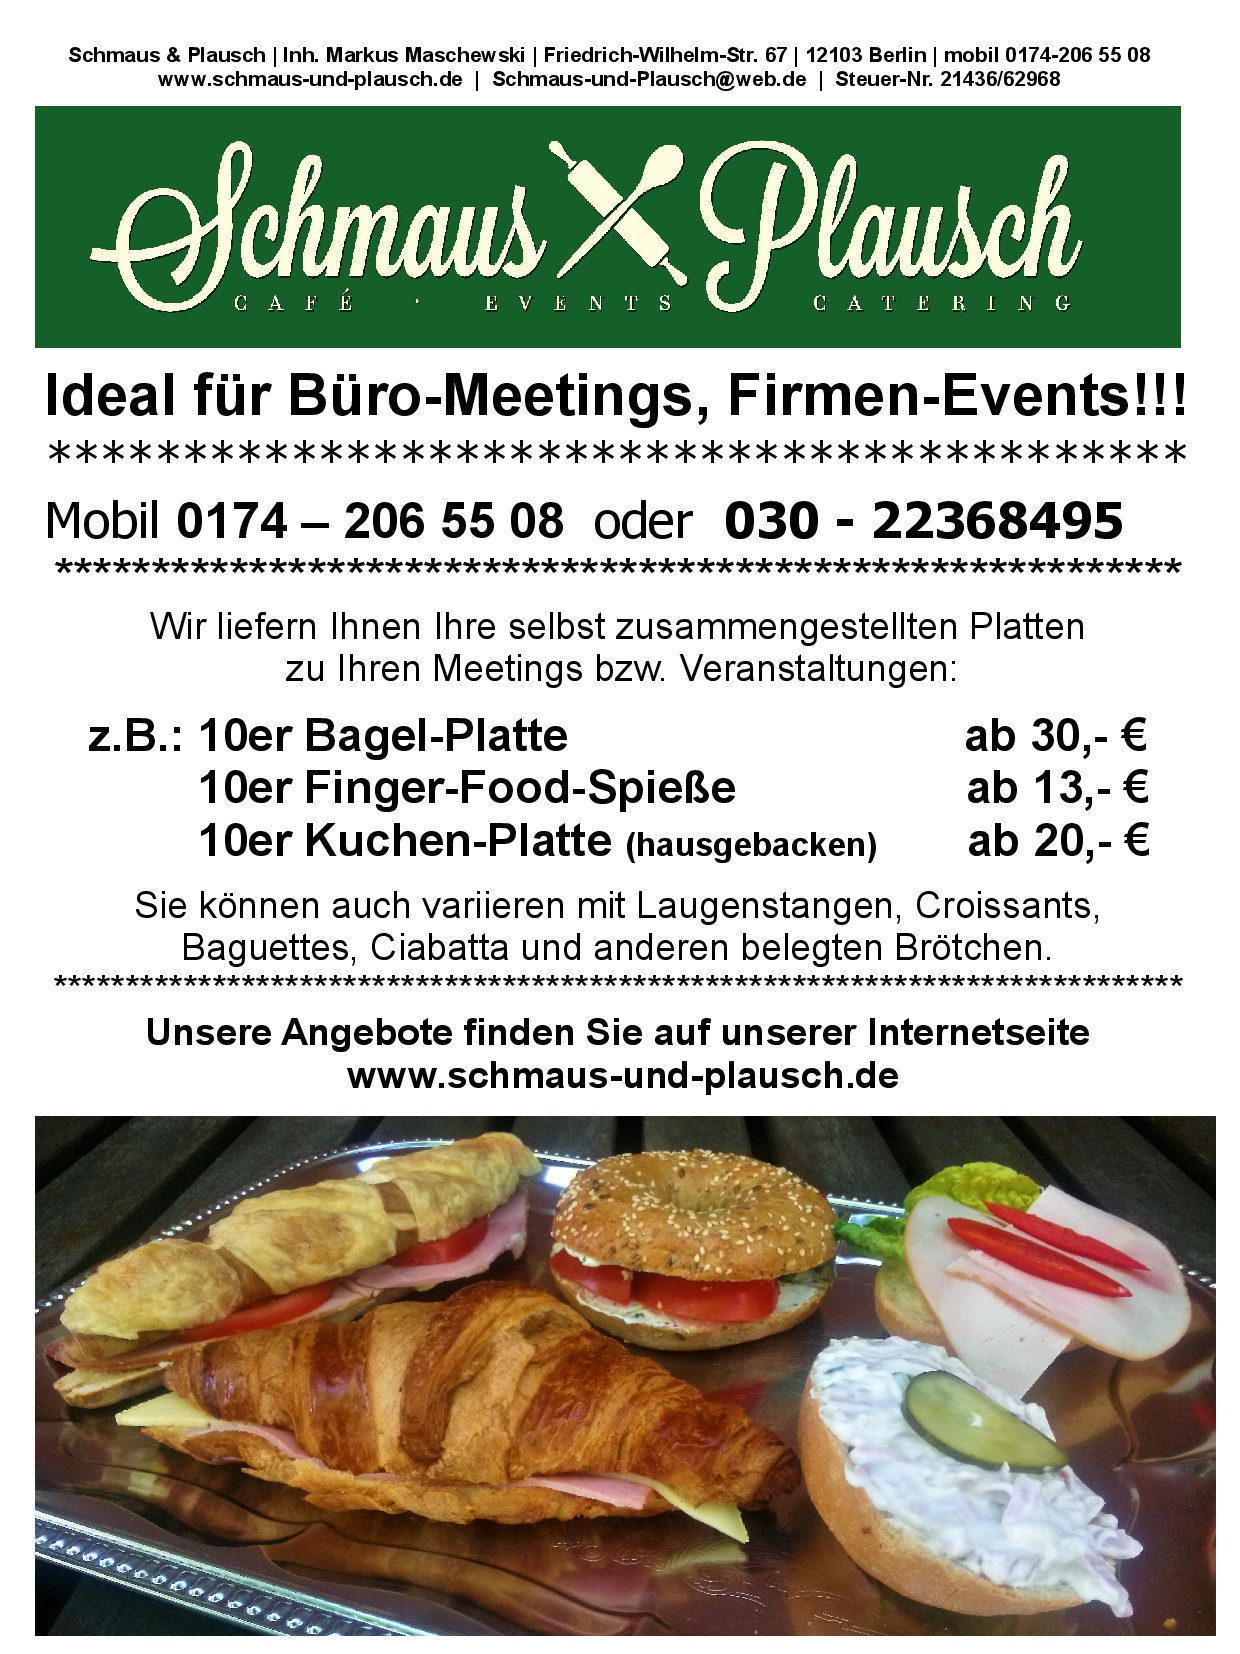 Catering - Lieferservice - Aktion